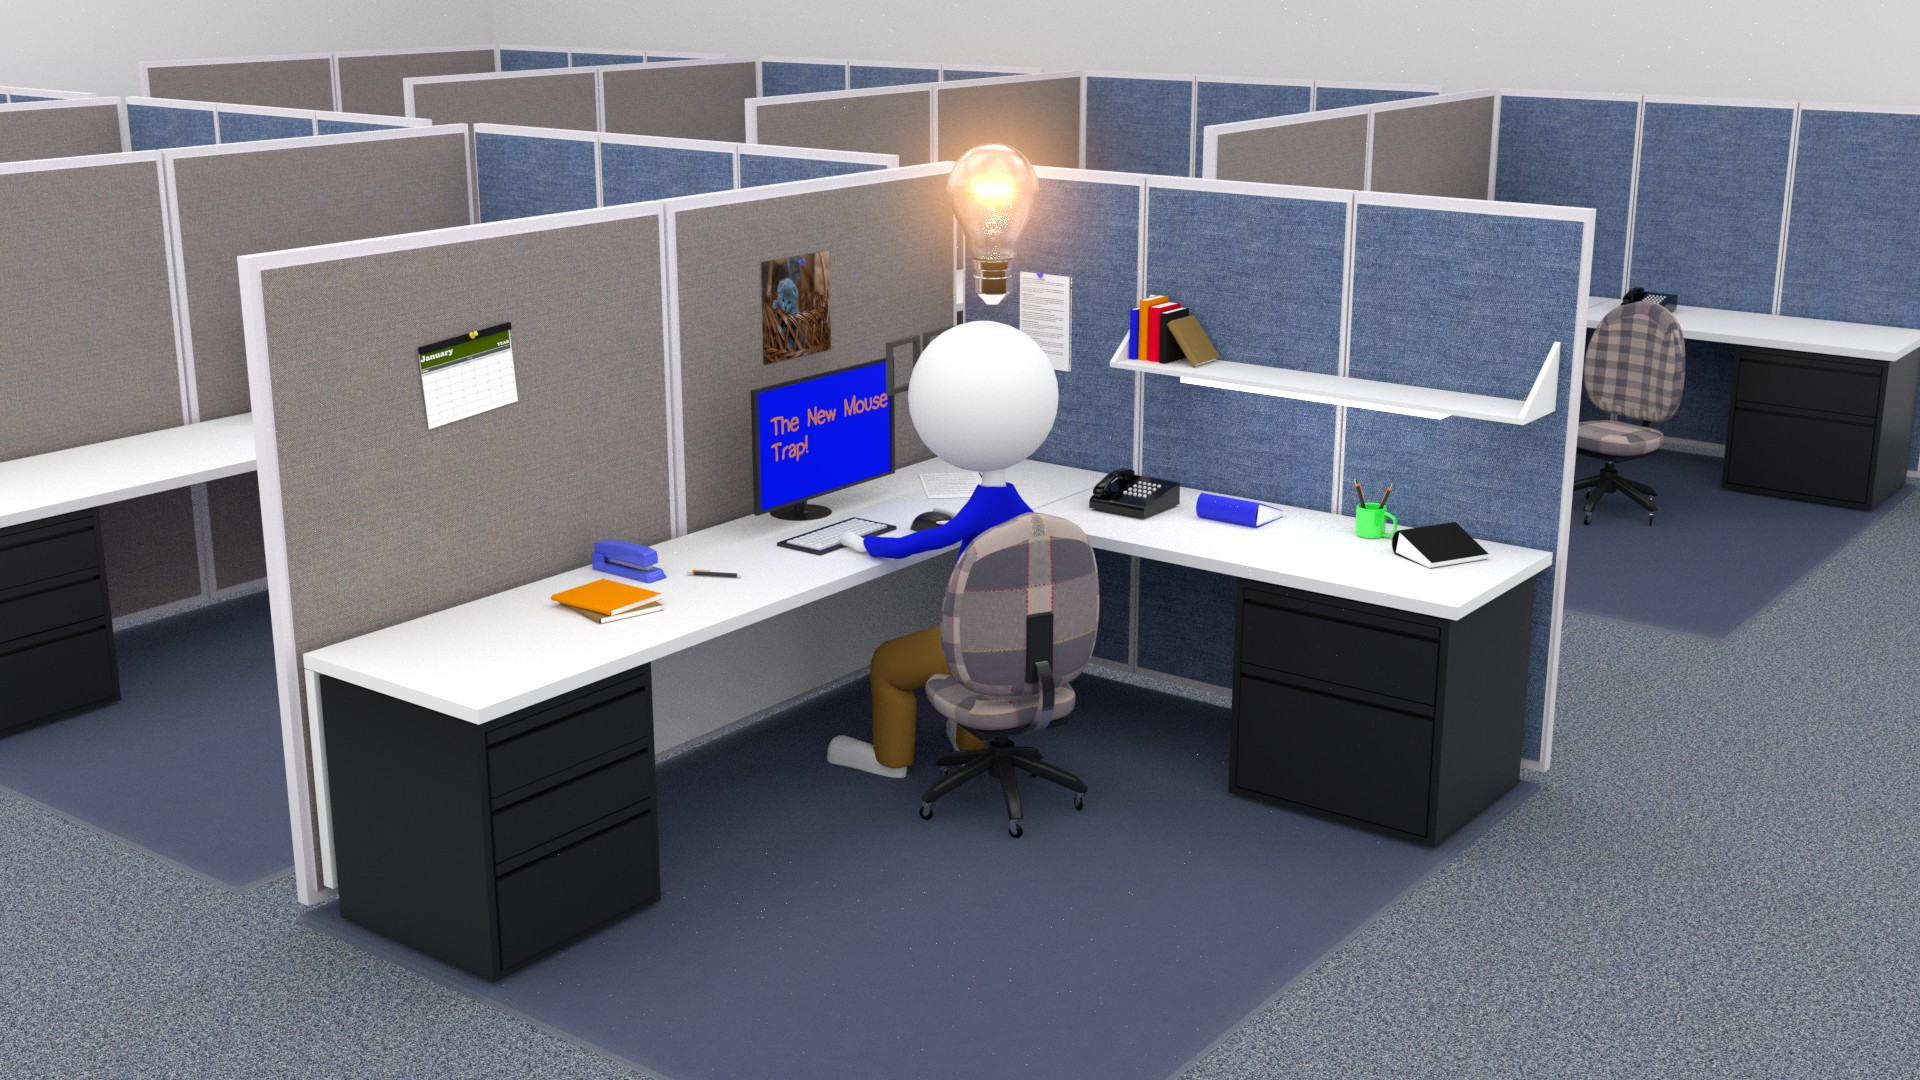 How To Incorporate 3d Design If You Don T Own 3d Software Educraft Ideas